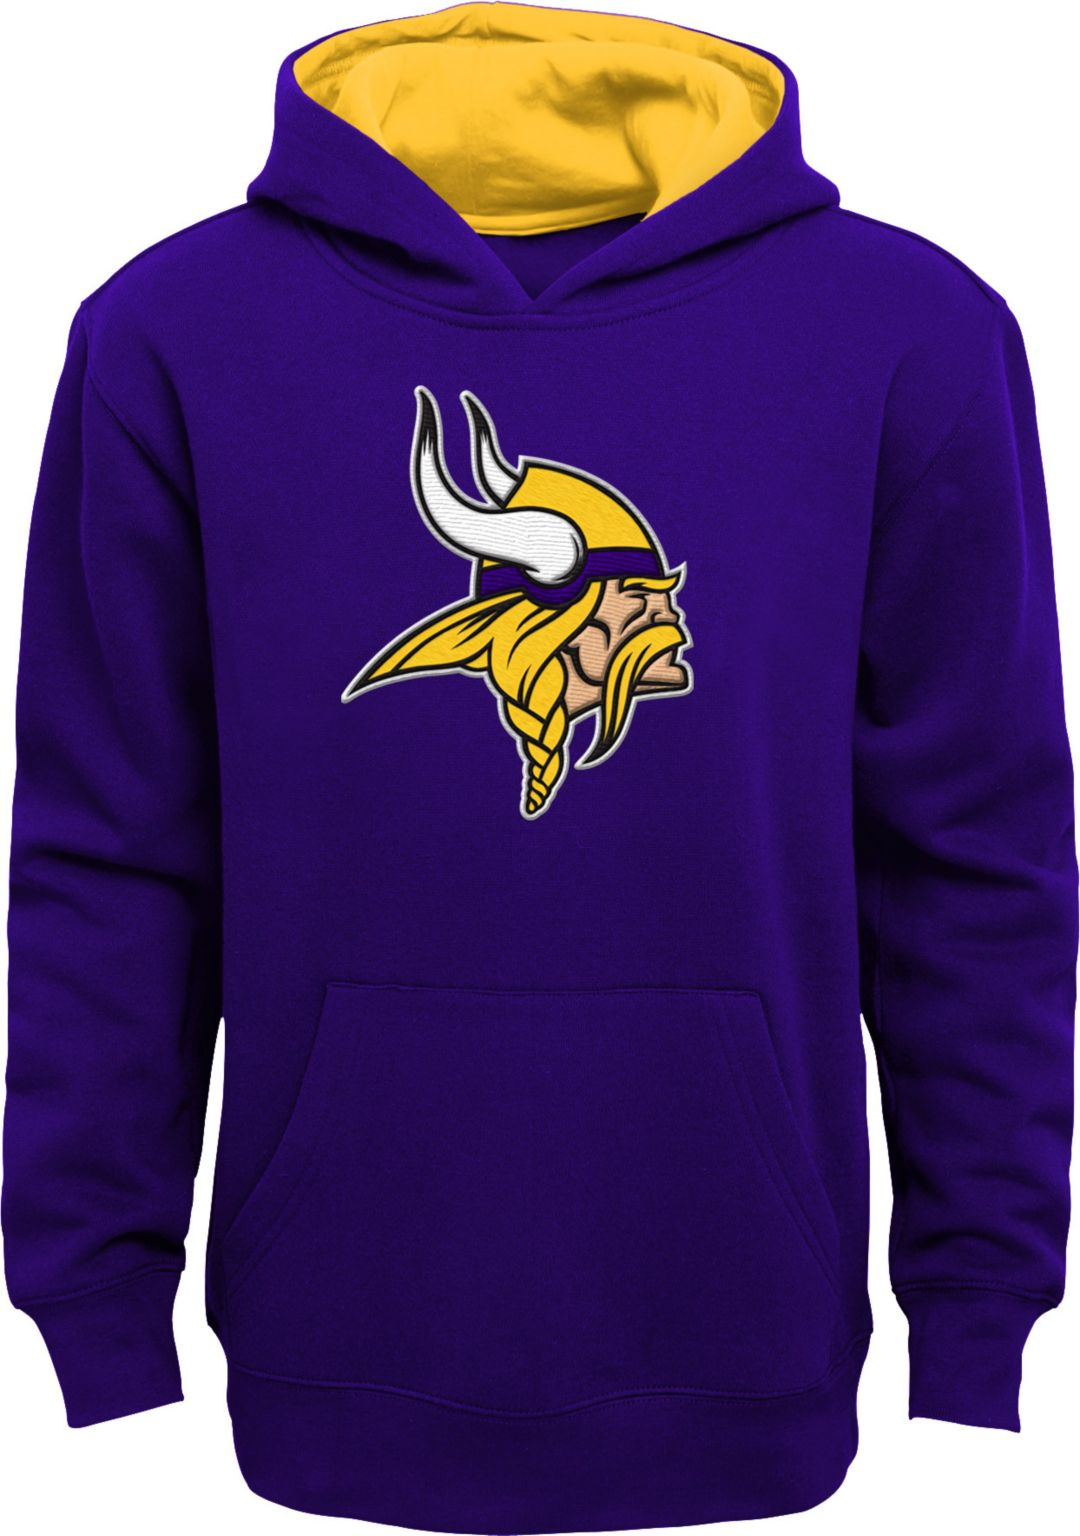 arrives 3a31d d3821 NFL Team Apparel Youth Minnesota Vikings Prime Purple Pullover Hoodie